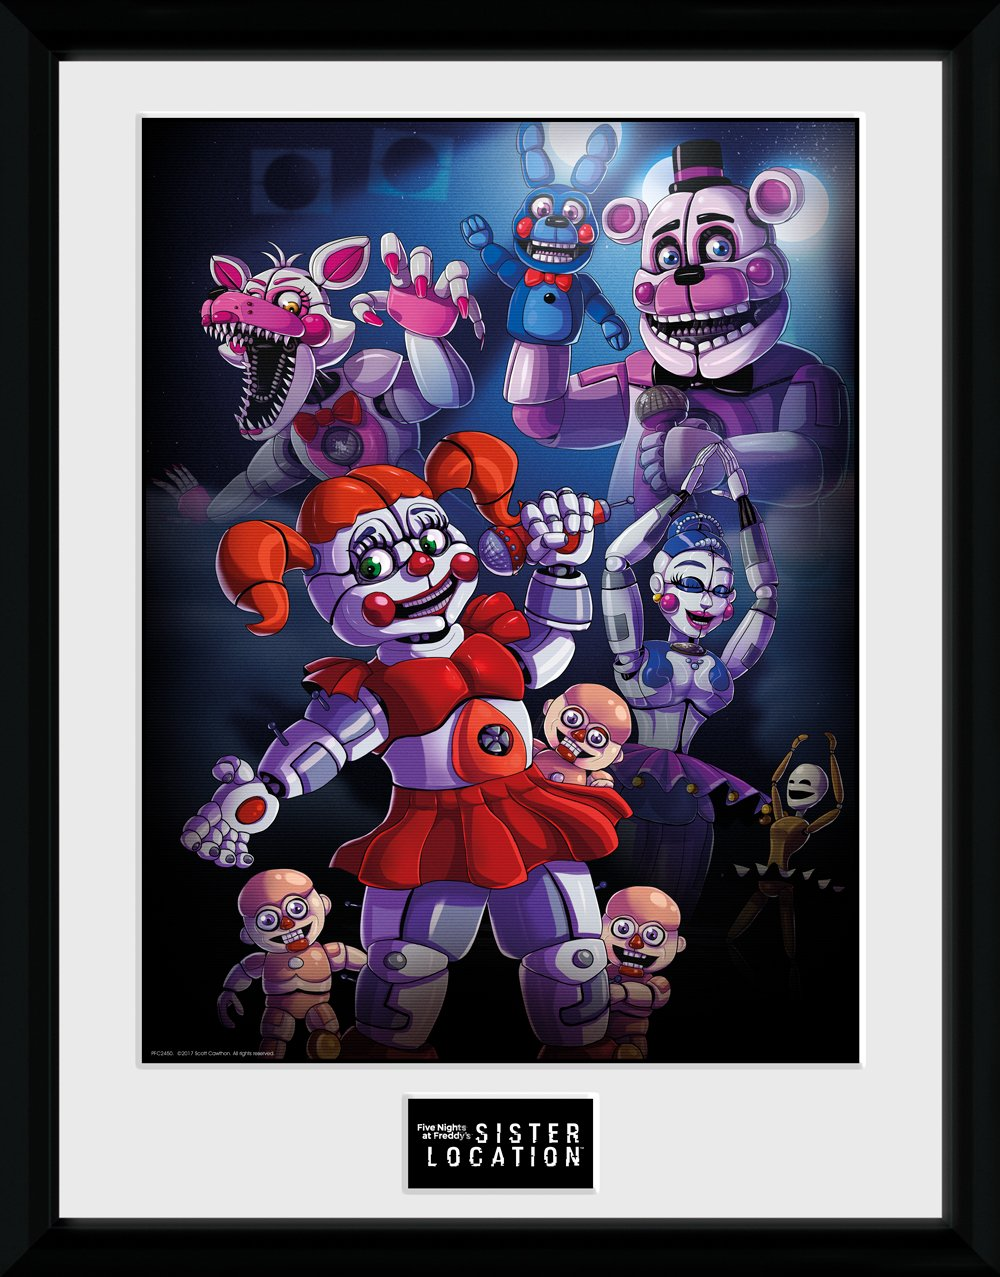 GB eye PFC2450 Five Nights At Freddy's, Sister location Group Framed Print, Wood, Multi-Colour, 52 x 44 x 3 cm